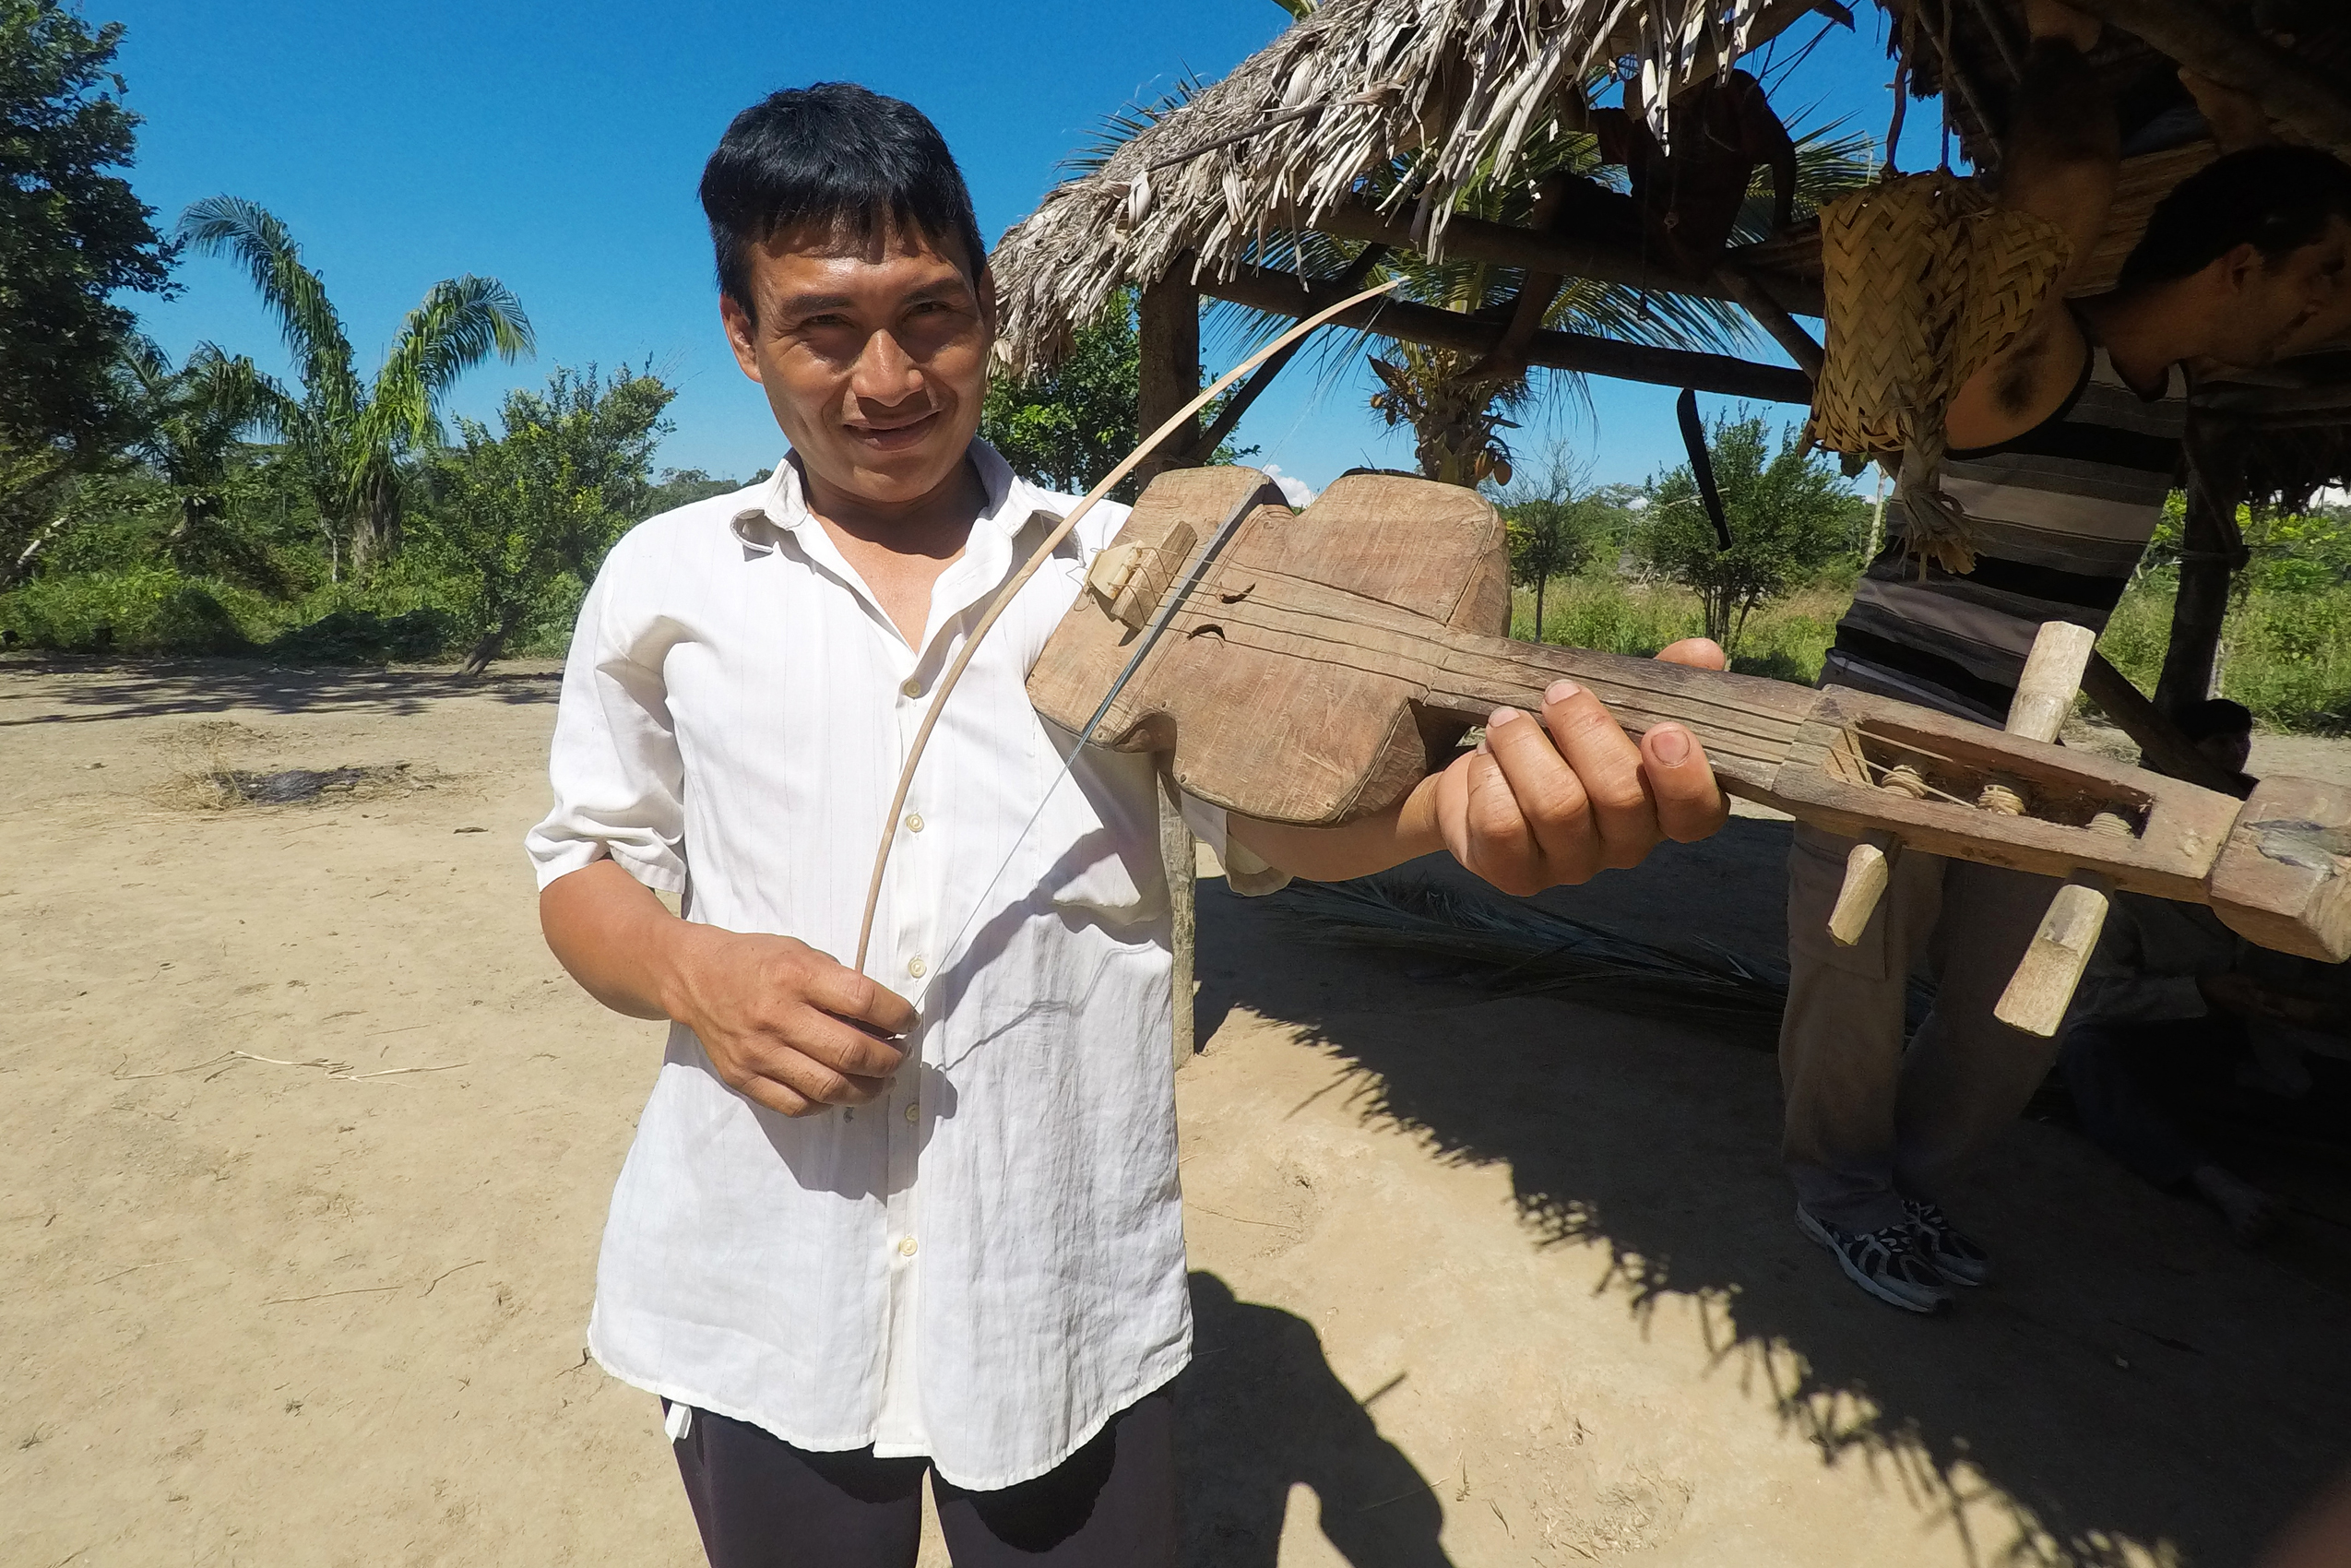 A Tsimané man plays an instrument resembling a violin.